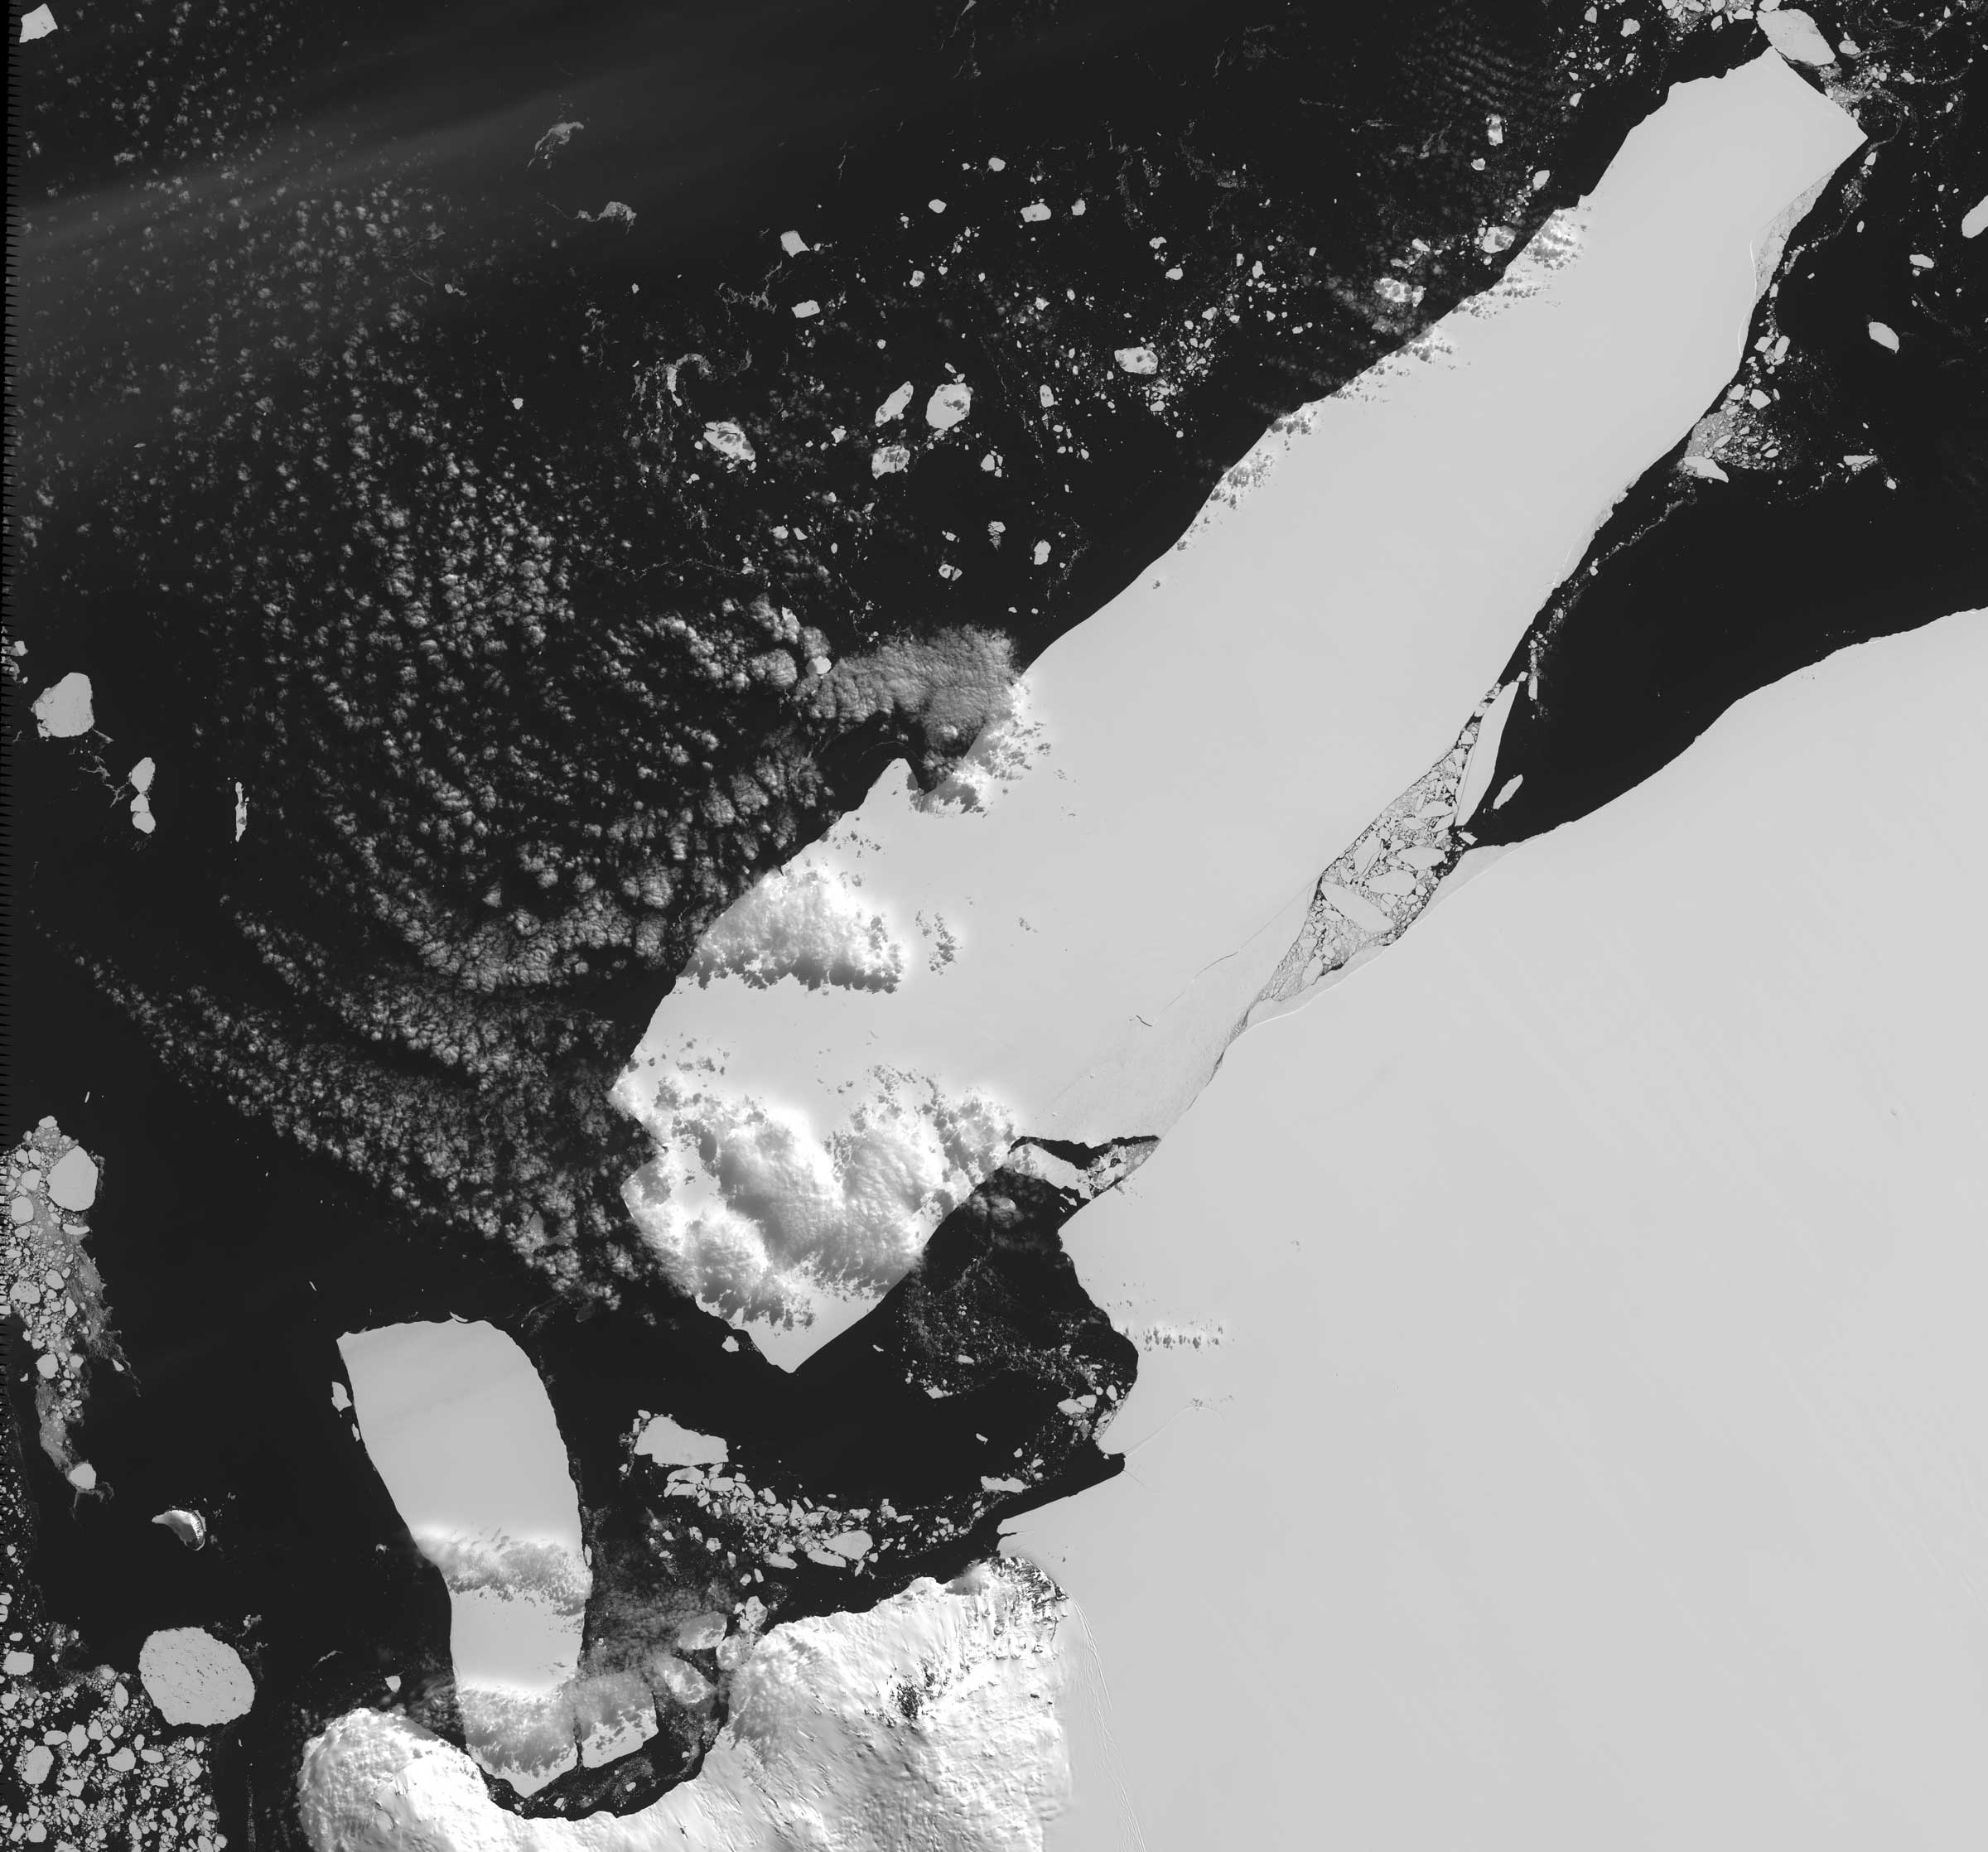 An iceberg that calved off Iceberg B-15 caused extensive pack ice buildup in McMurdo Sound, blocking shipping and preventing penguin access to open water.